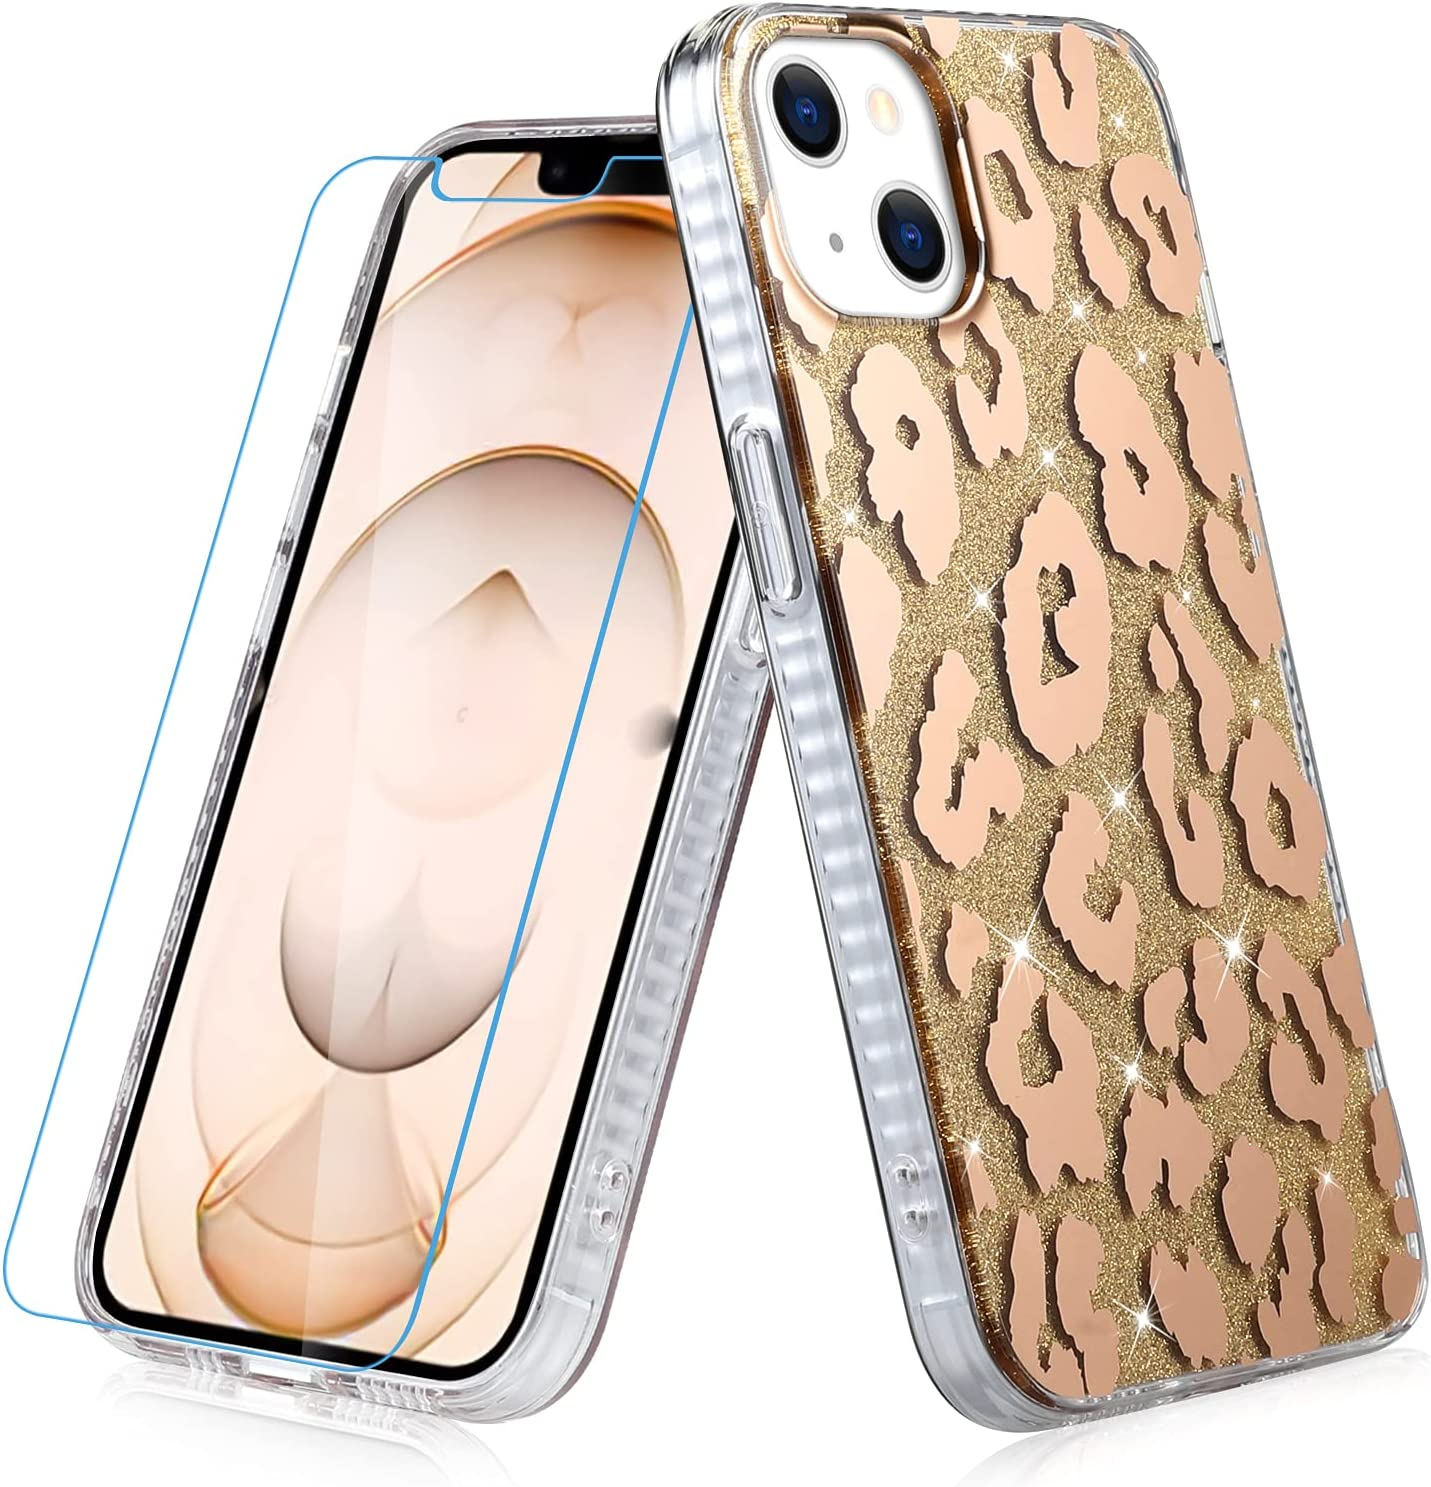 MZELQ Compatible with iPhone 13 Case (2021) 6.1 Inch Leopard Pattern Glitter Sparkle Design for Women Girls Slim Soft Bumper Hard Back Protection Cover with Screen Protector (Golden)